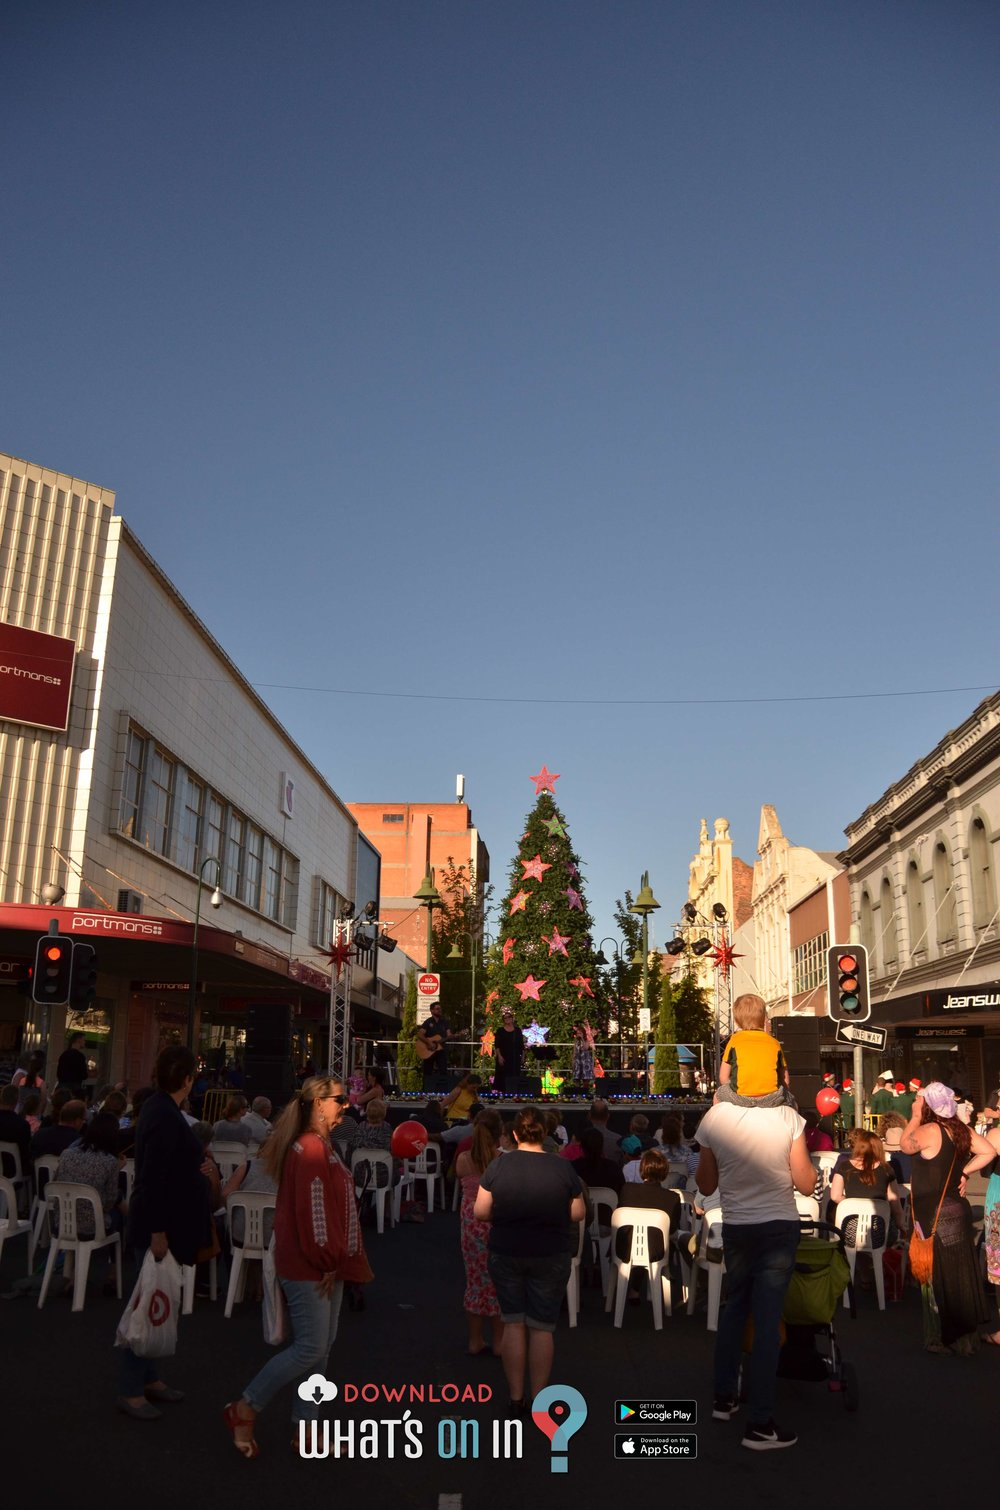 Christmas in the City 2016, Launceston, Tasmania 2016 - What's On In App 032 DSC_8270.jpg